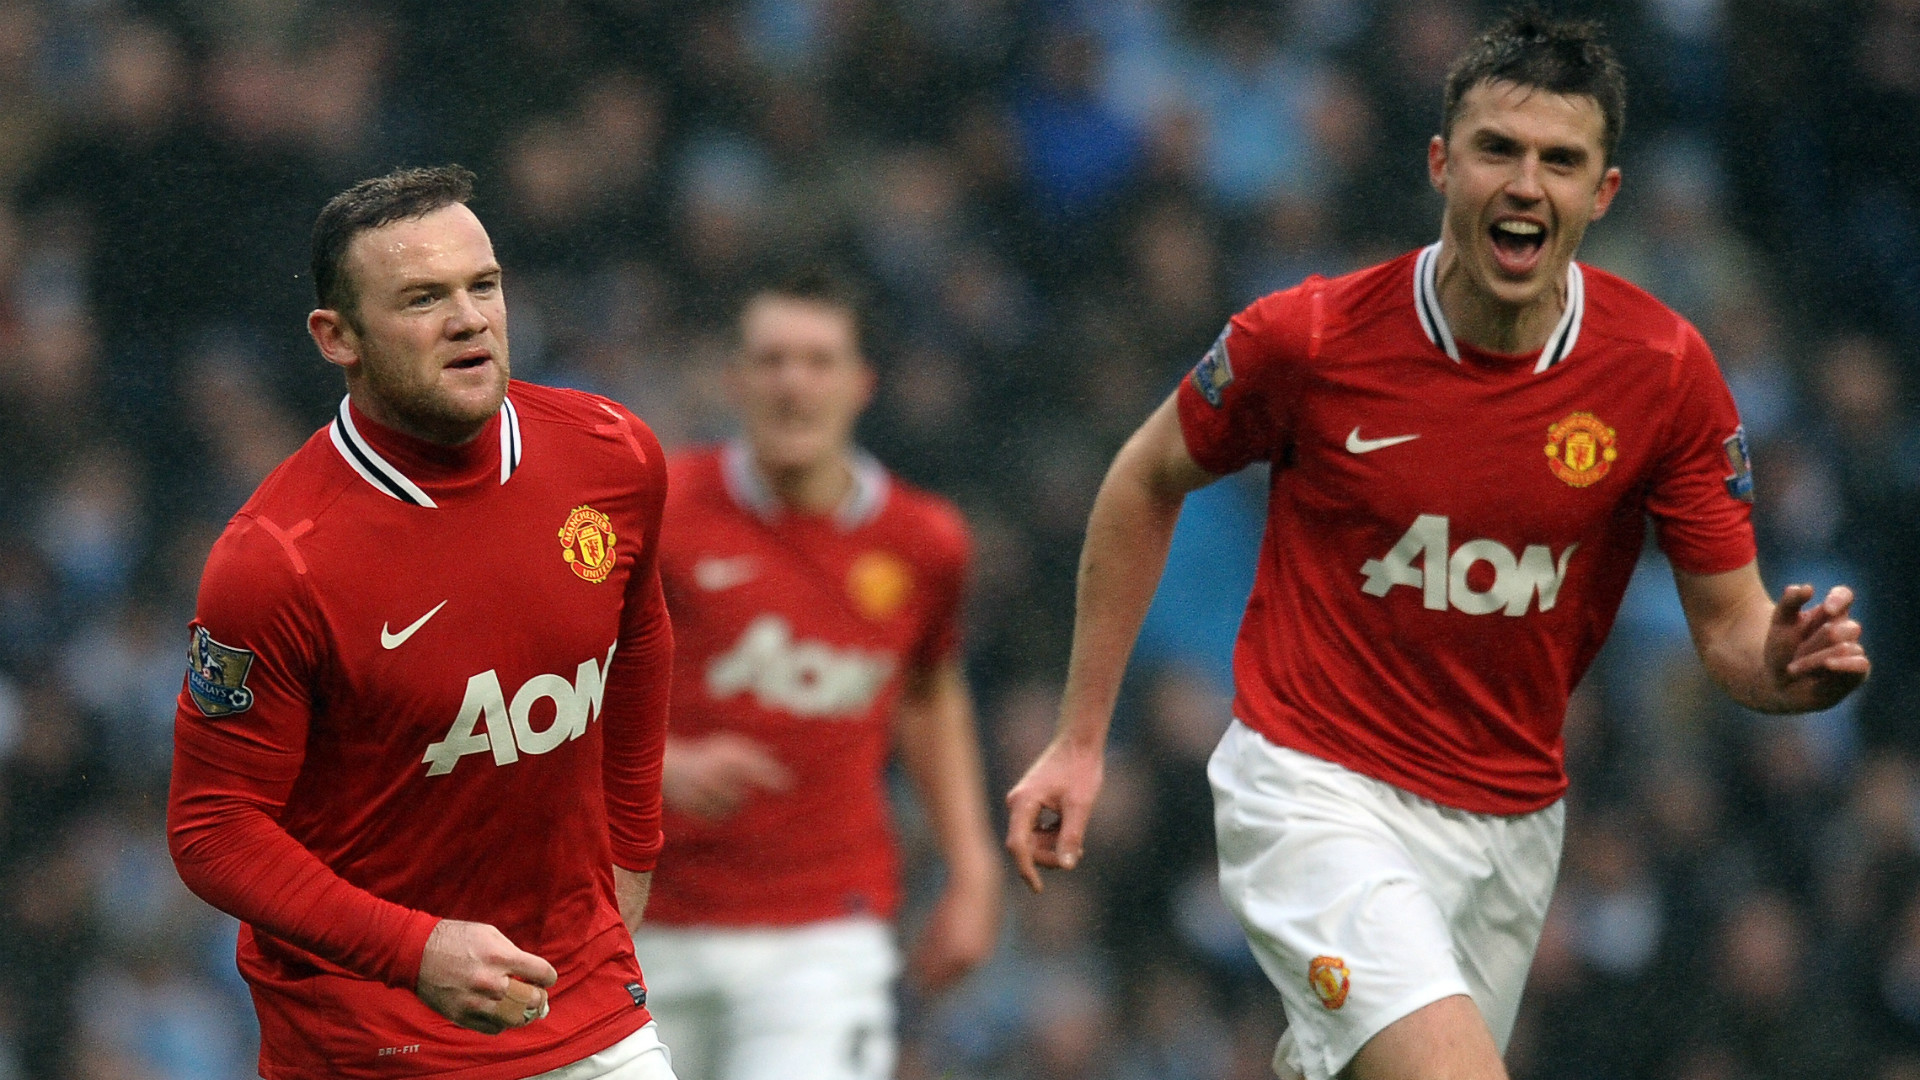 wayne-rooney-michael-carrick-manchester-city-manchester-united-fa-cup-08012012_1307u873yuvjizn6vomcl67b1